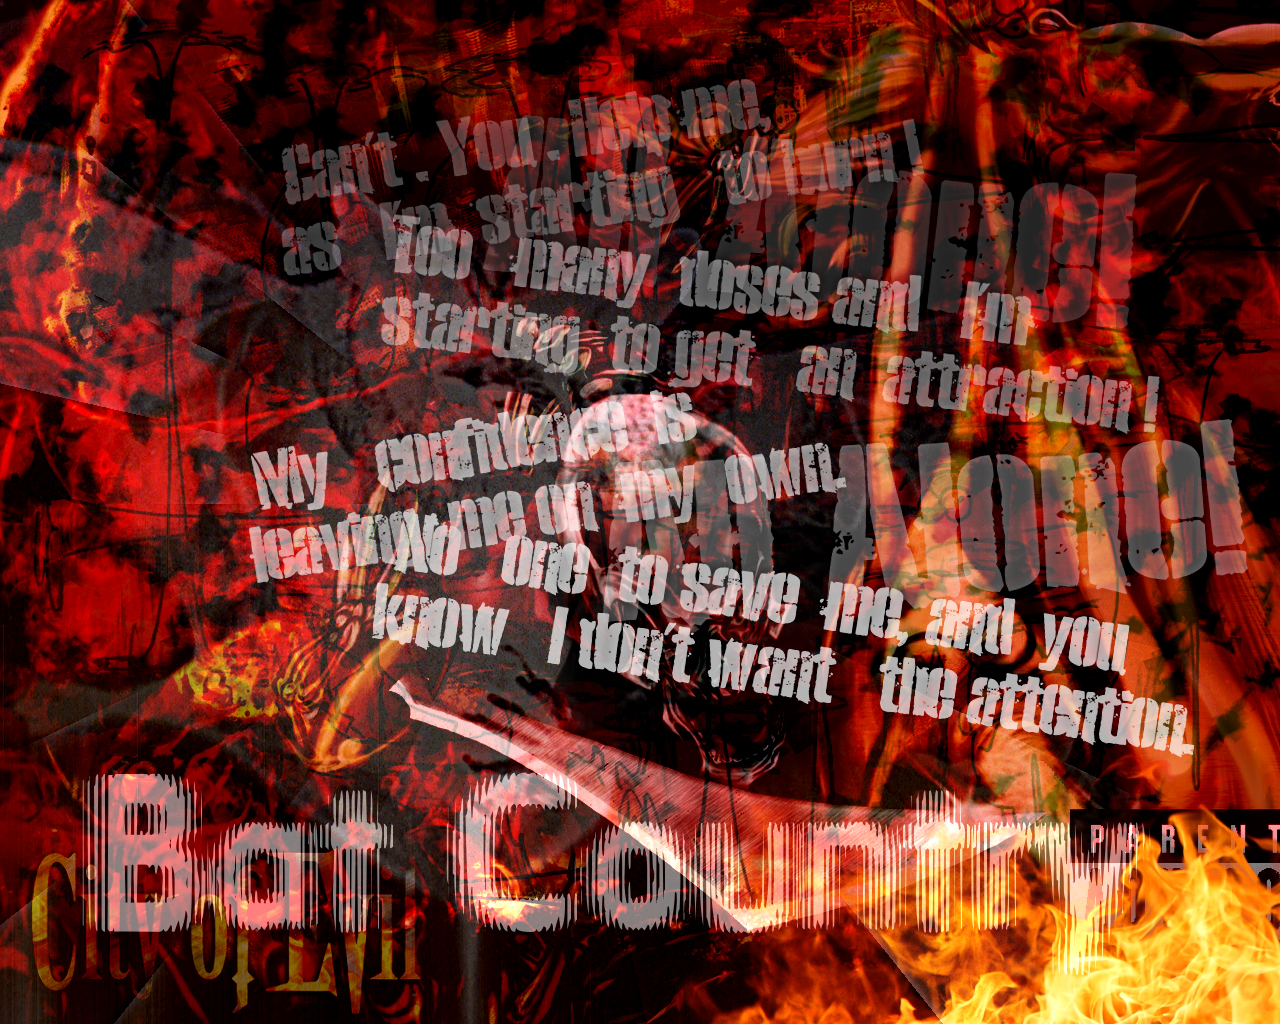 Country Lyrics Wallpaper Bat country by applejackles 1280x1024